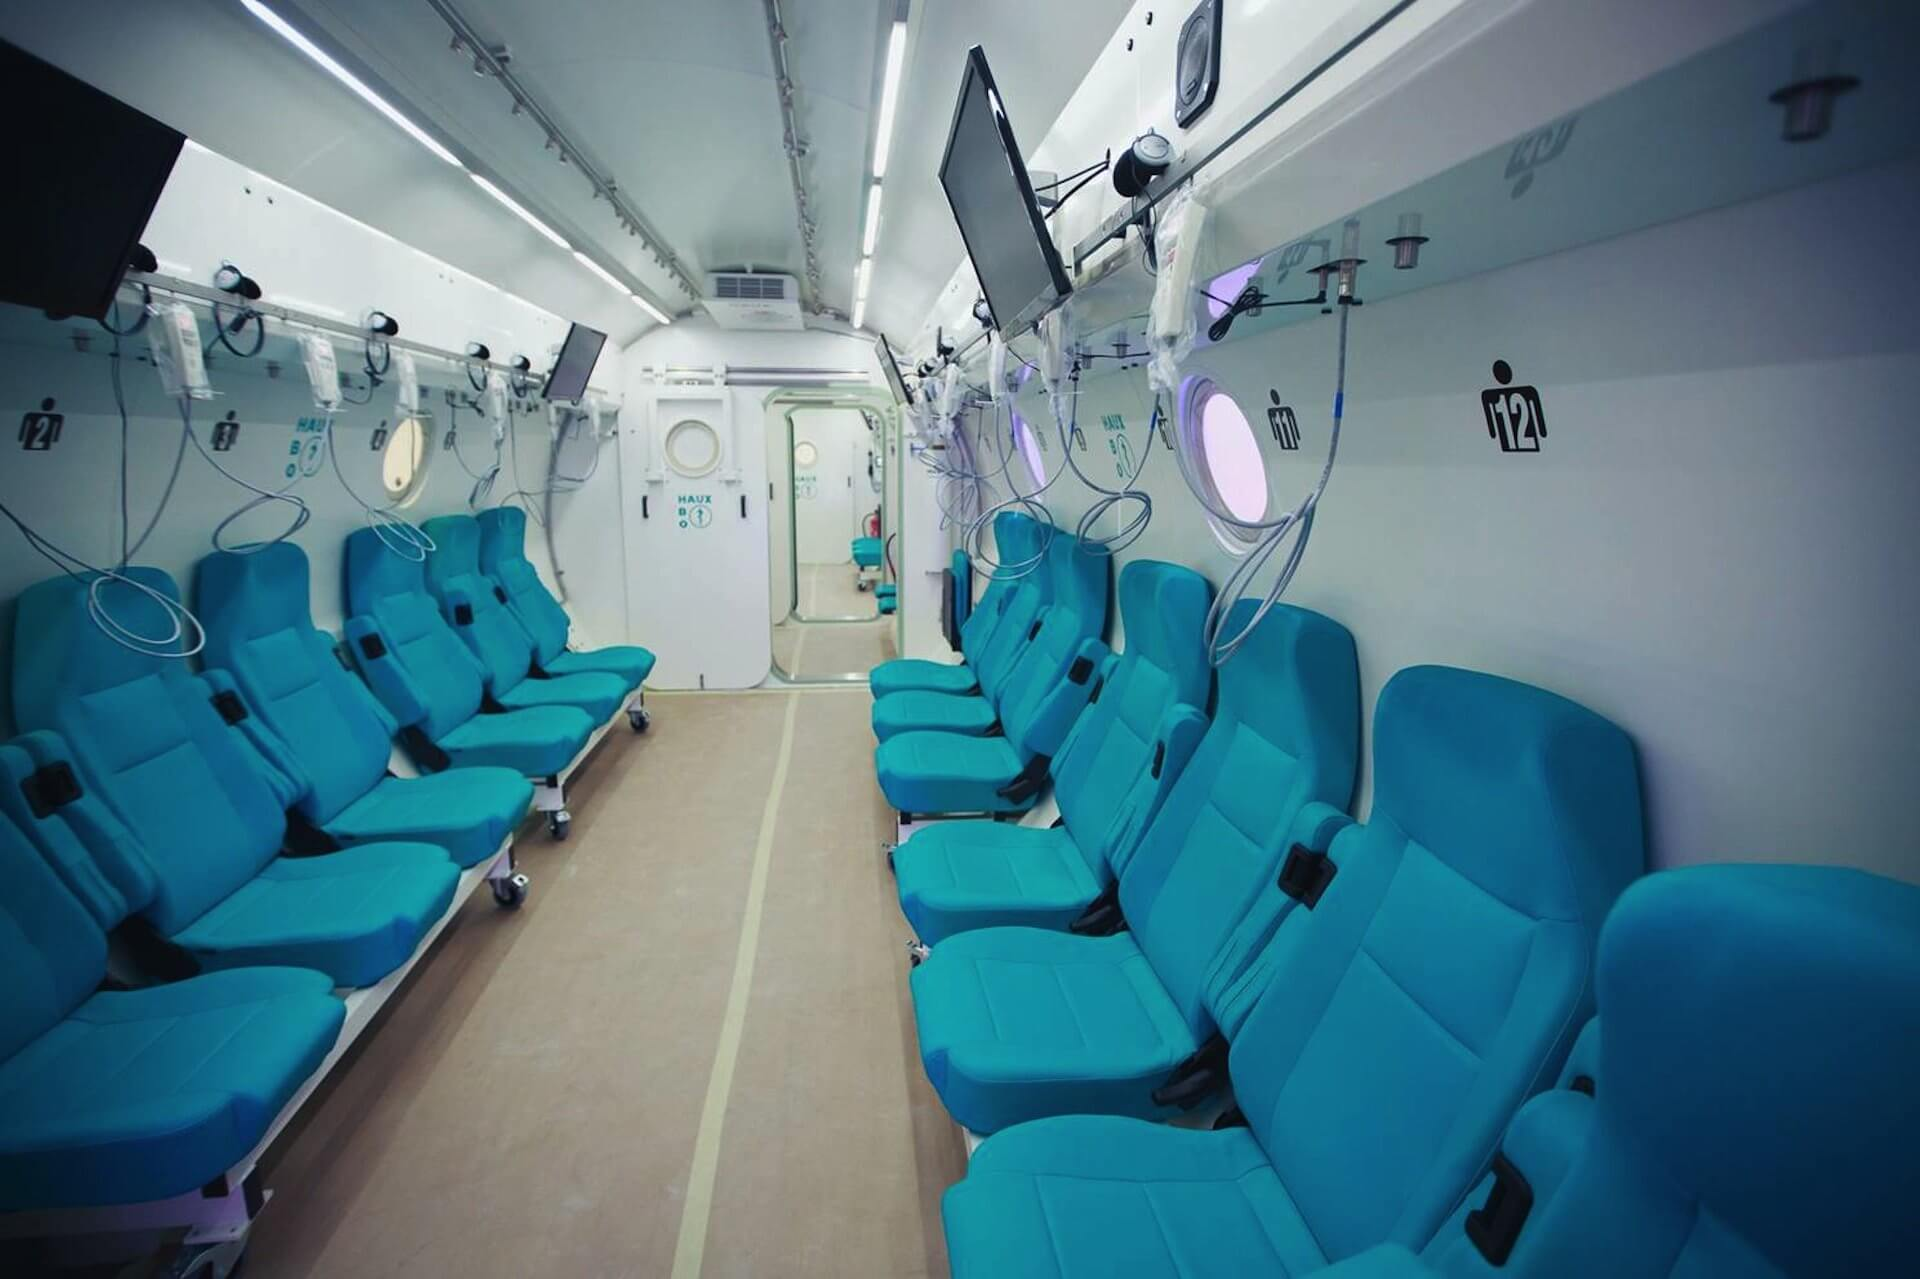 The interior of a hyperbaric chamber at the Sagol Center for Hyperbaric Medicine and Research in Israel, used to treat patients with fibromyalgia in a recent trial. (Credit: Sagol Center for Hyperbaric Medicine and Research)